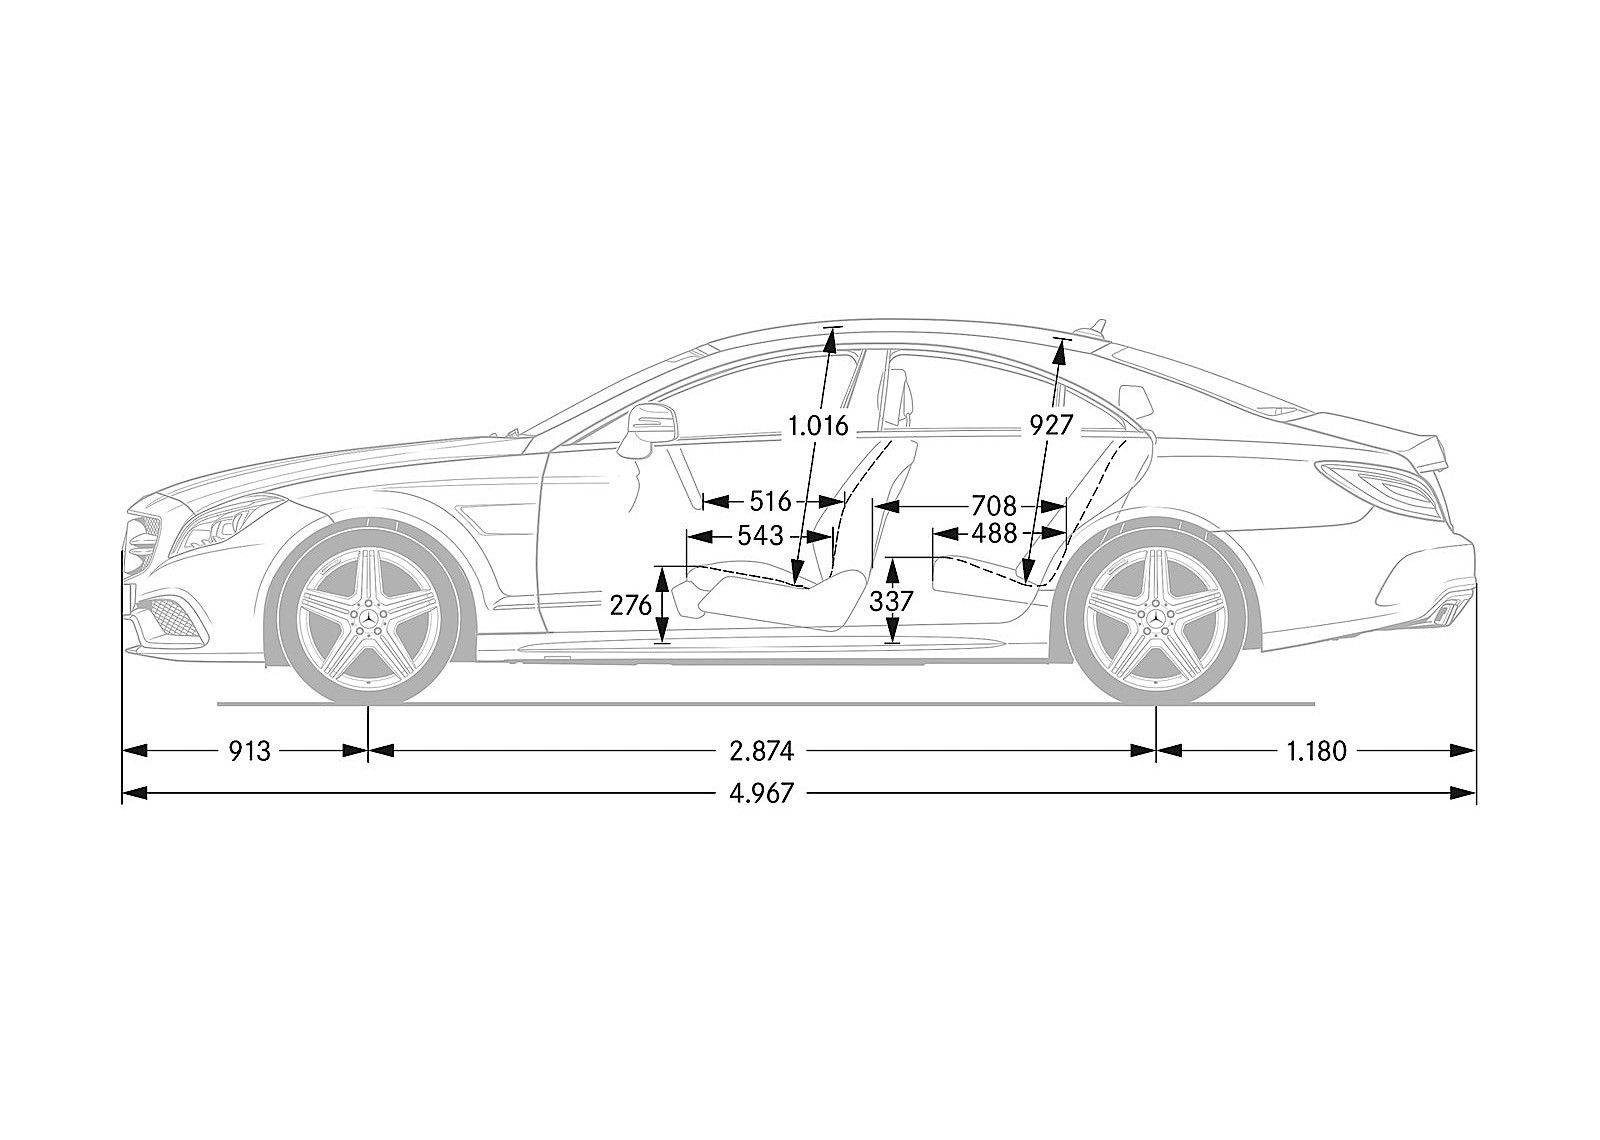 Dodge magnum window diagram imageresizertool com for 2001 dodge stratus power window problems